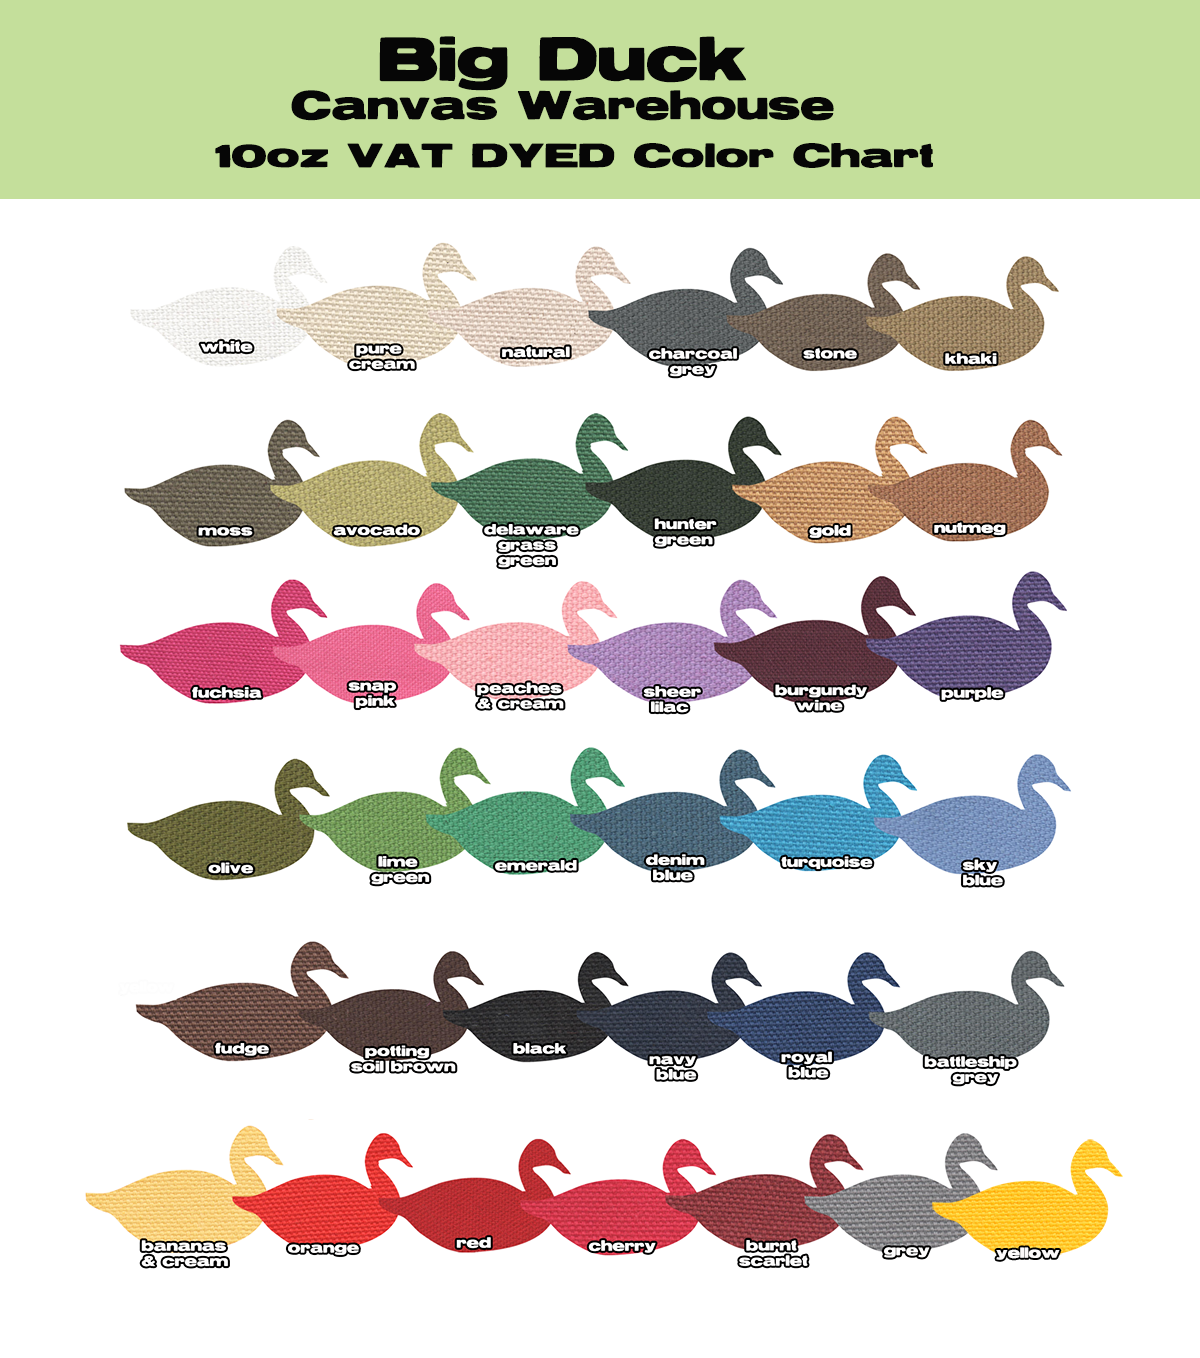 10oz Duck Cloth Color Chart For 2015 Vat Dyed Canvas